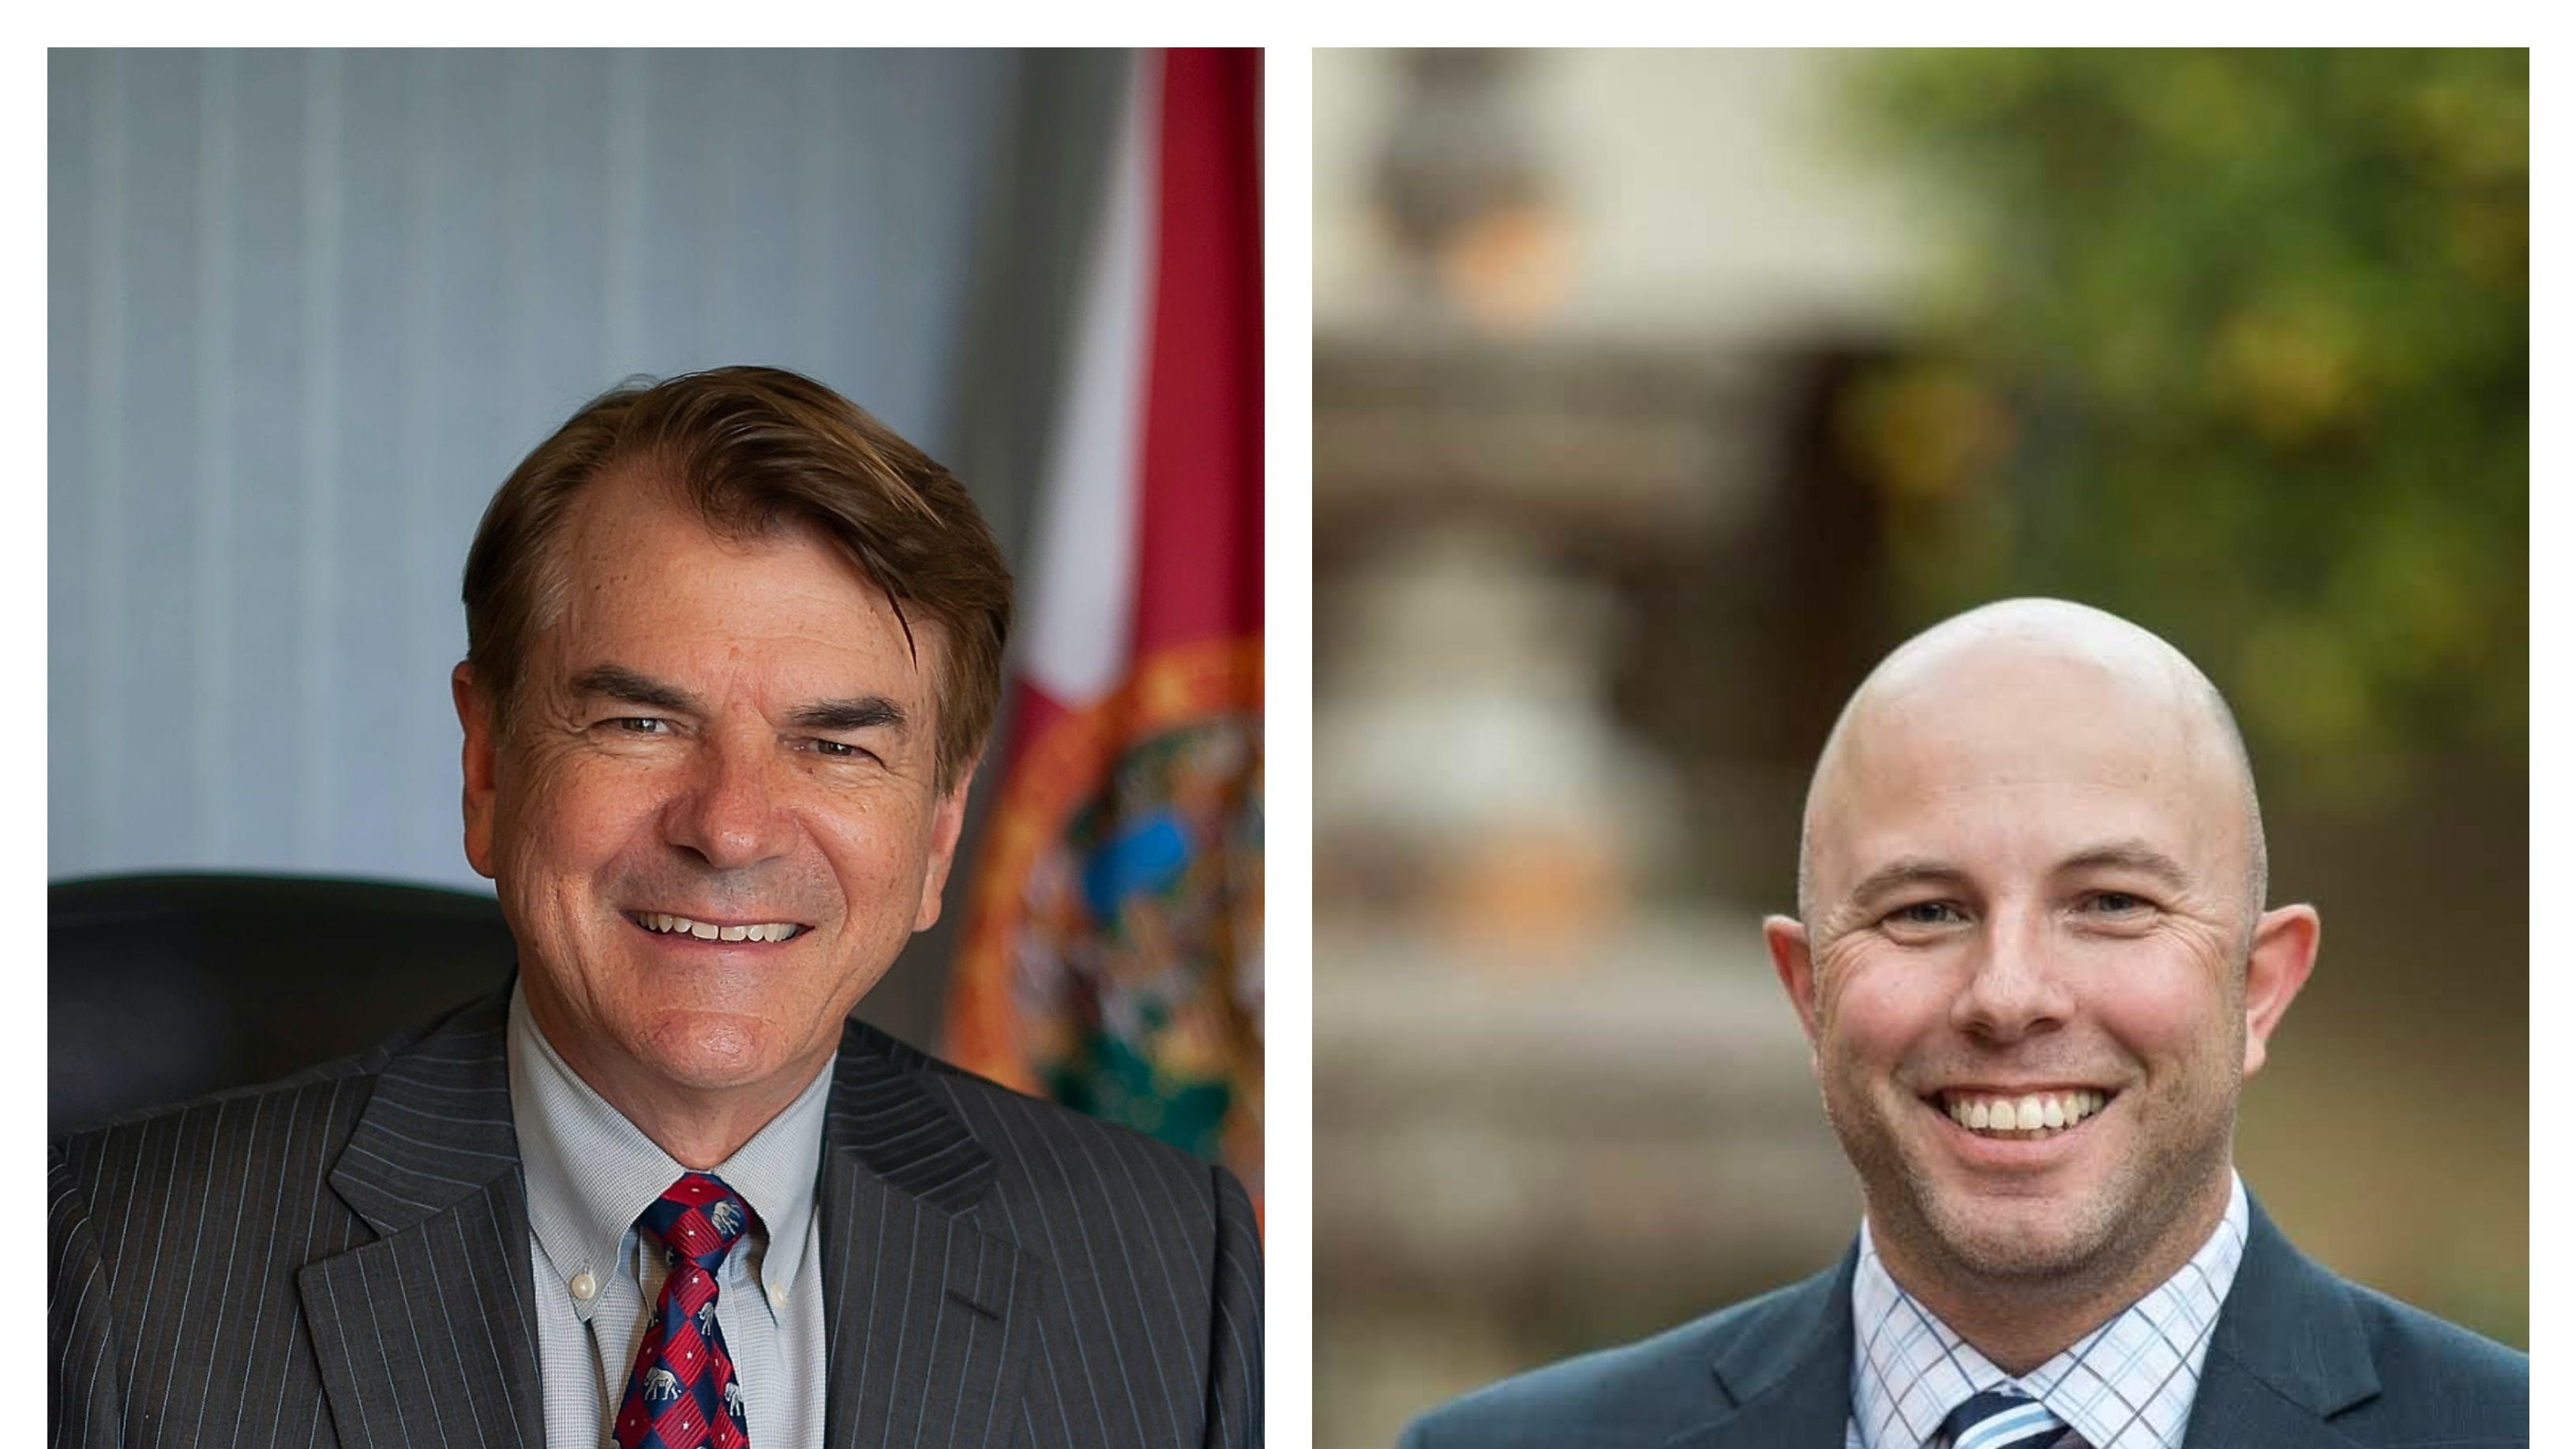 Altman, Dabbs face off for a swath of Brevard voters